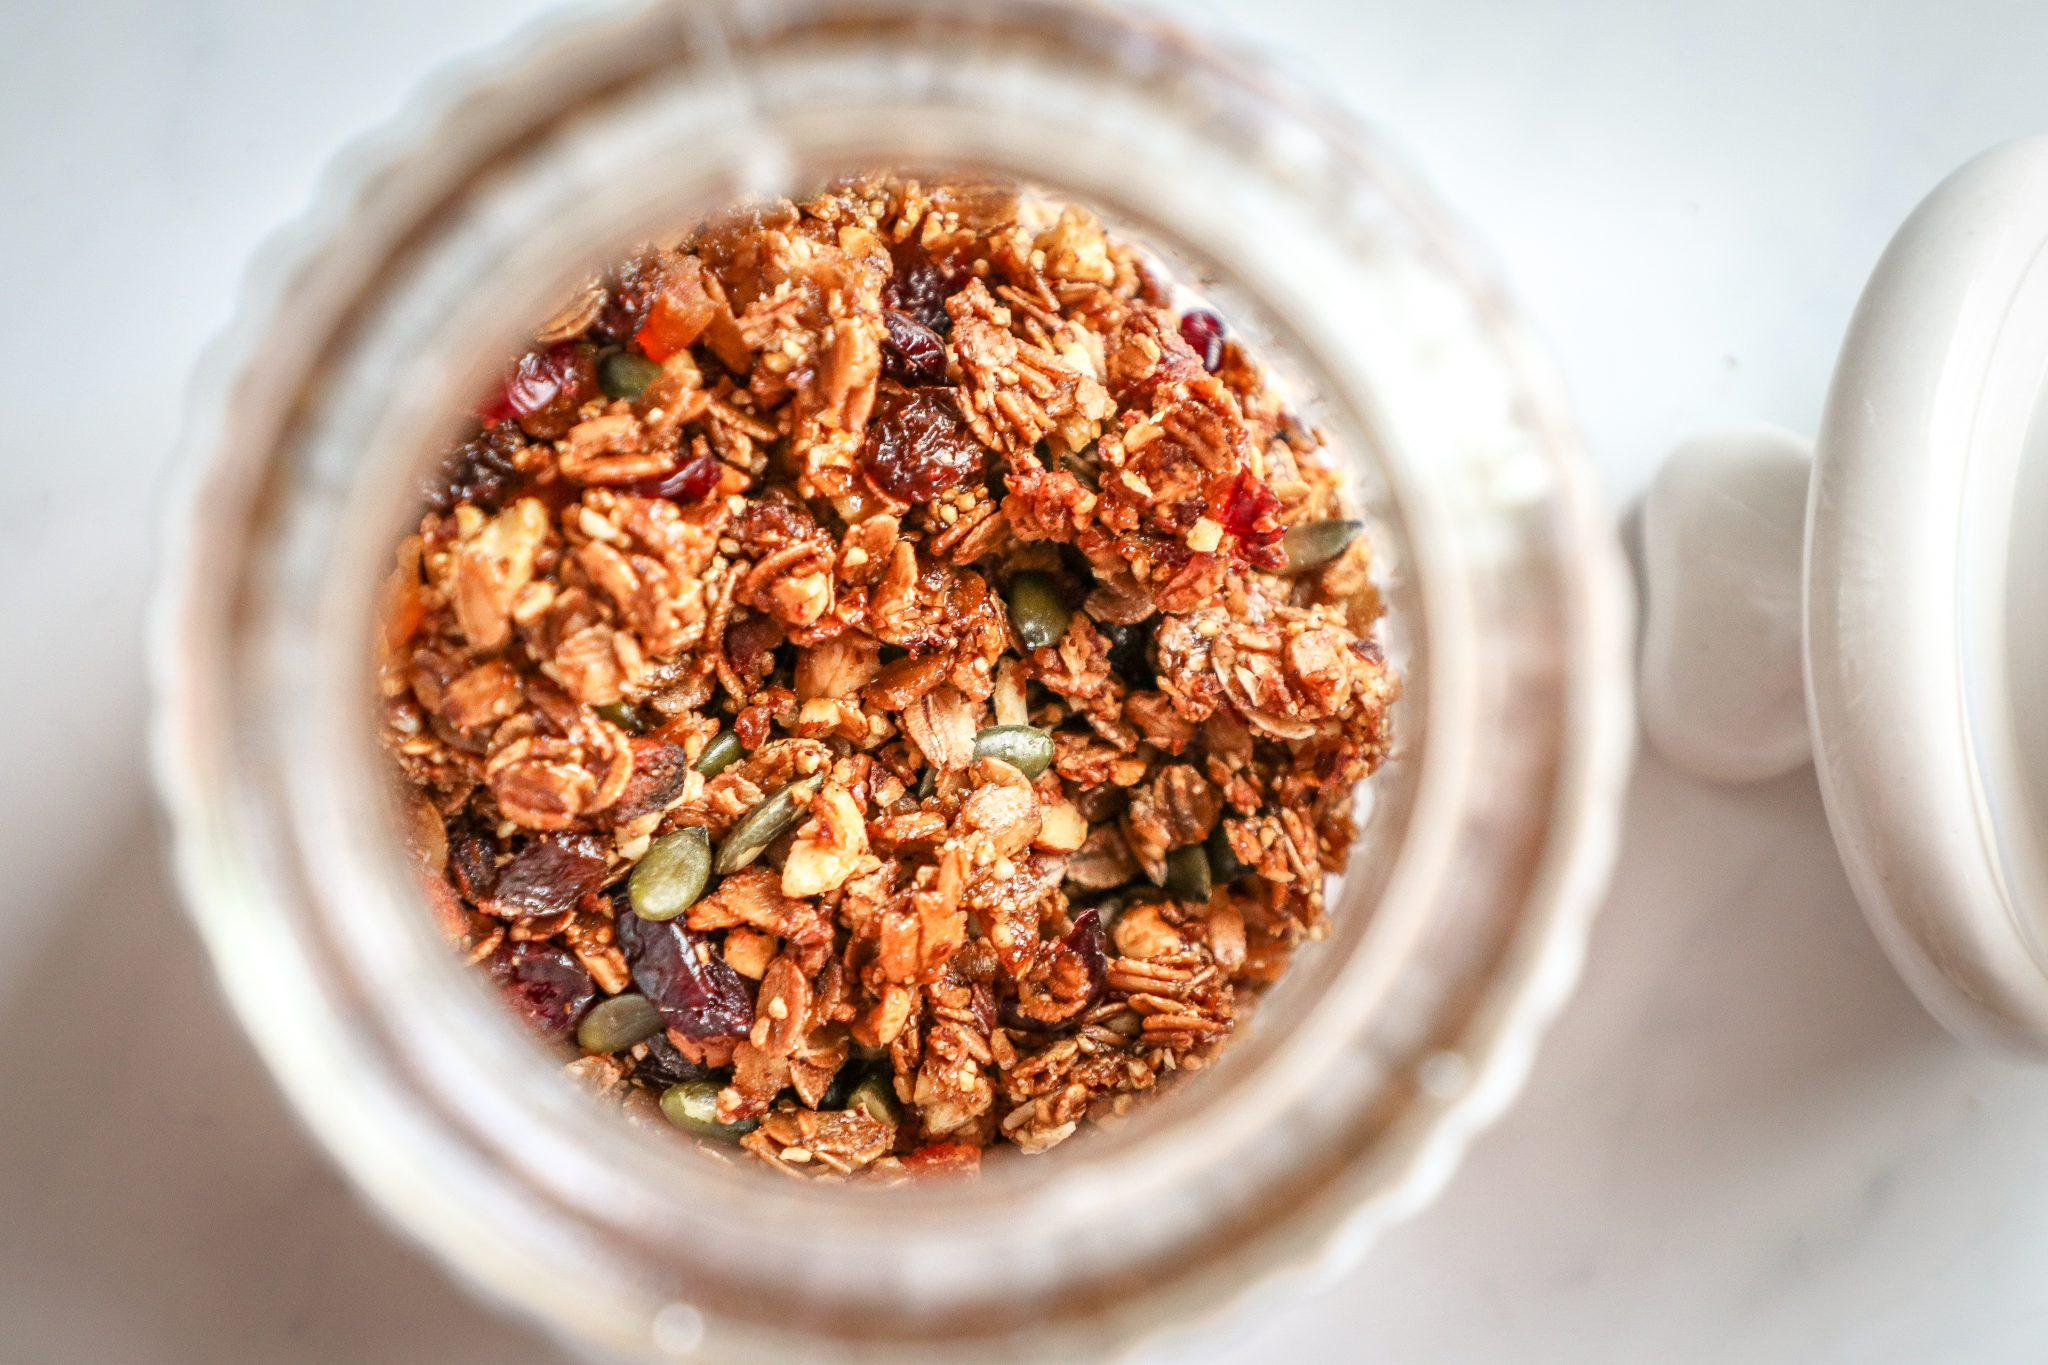 Healthy roasted crunchy spelt and rye flakes, with all the goodness of nuts and dried fruits. Sweetened using maple syrup and molasses.